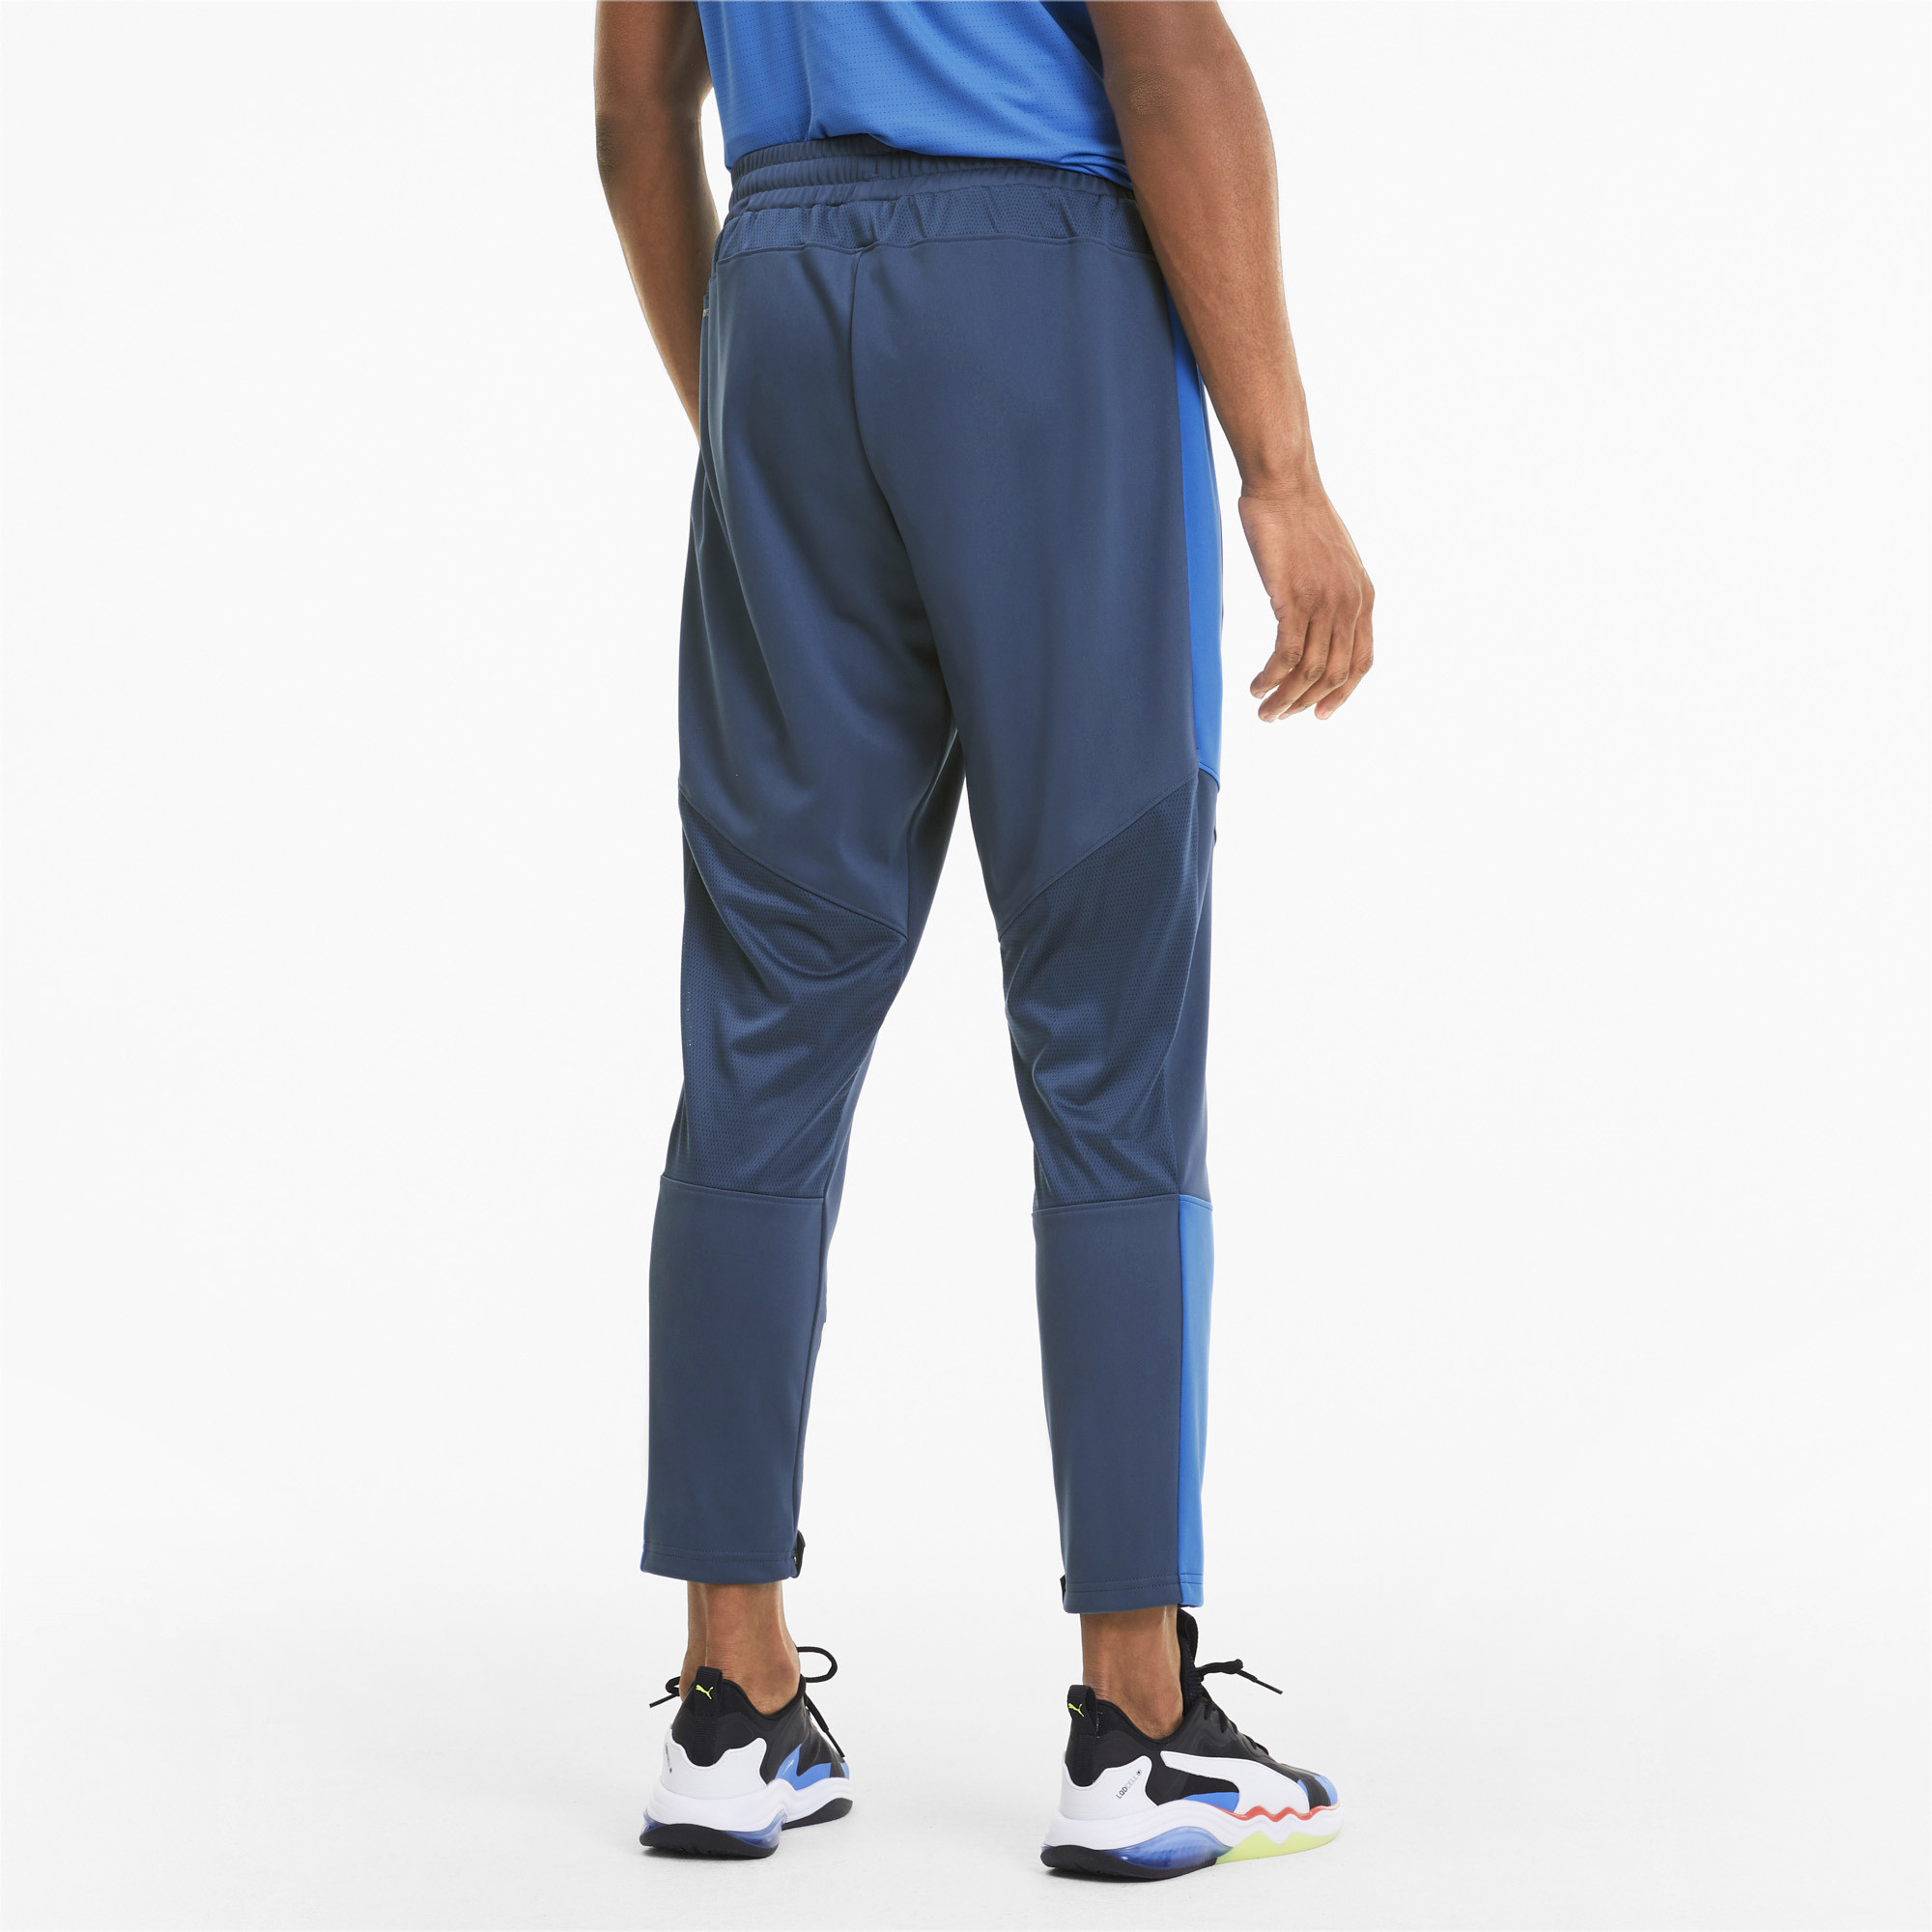 PUMA-Men-039-s-Blaster-Pants thumbnail 27